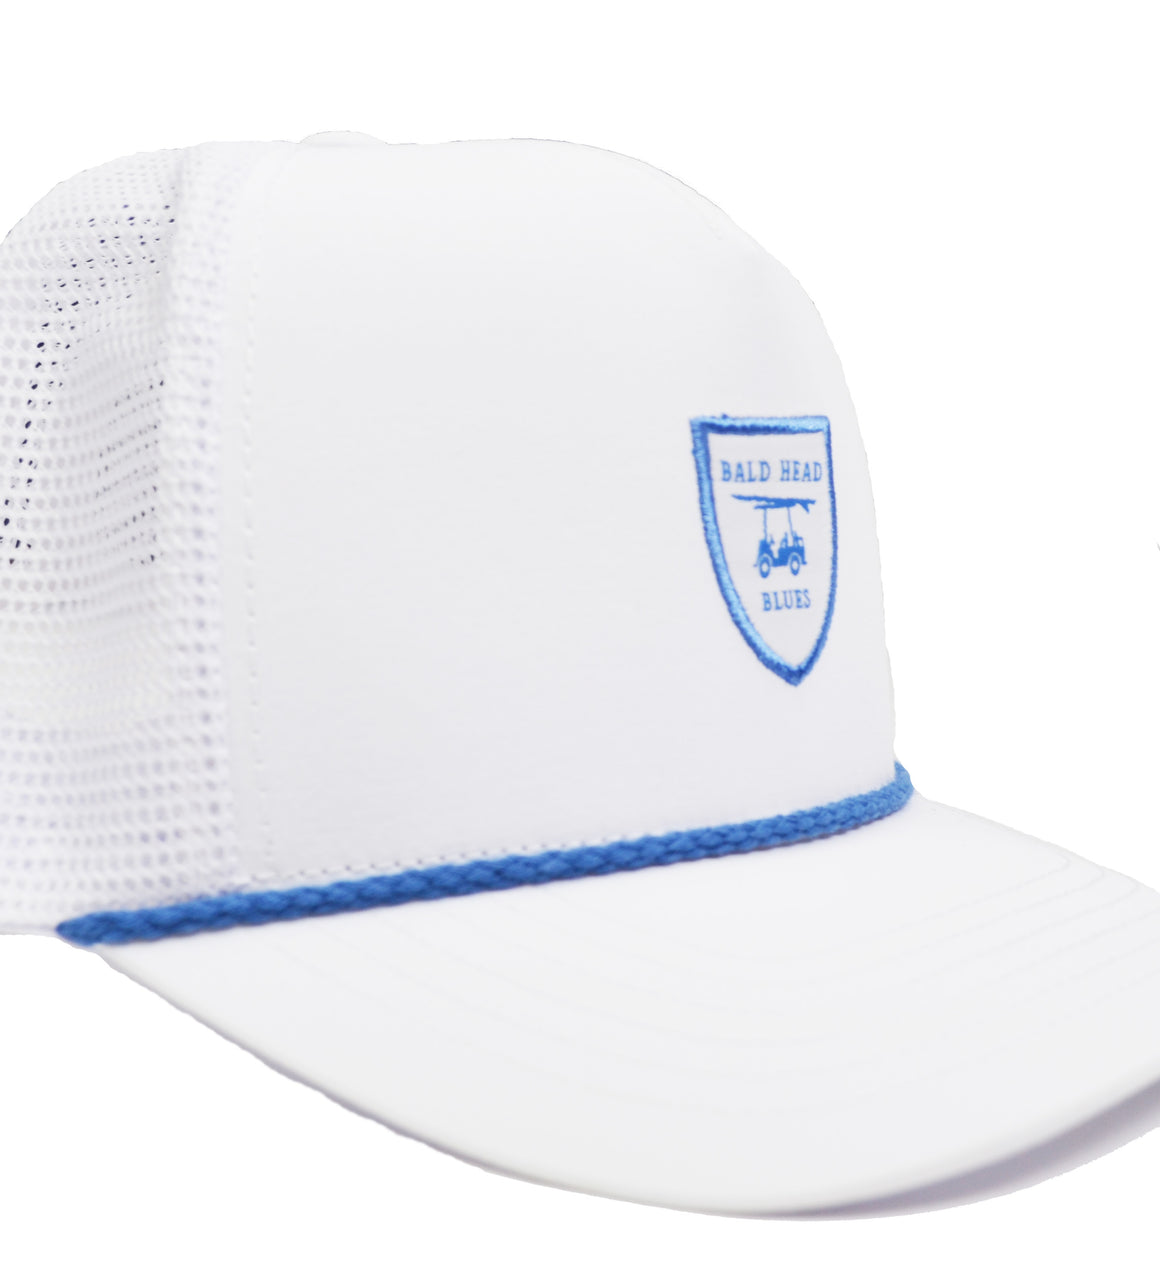 NEW Performance Trucker Hat - White